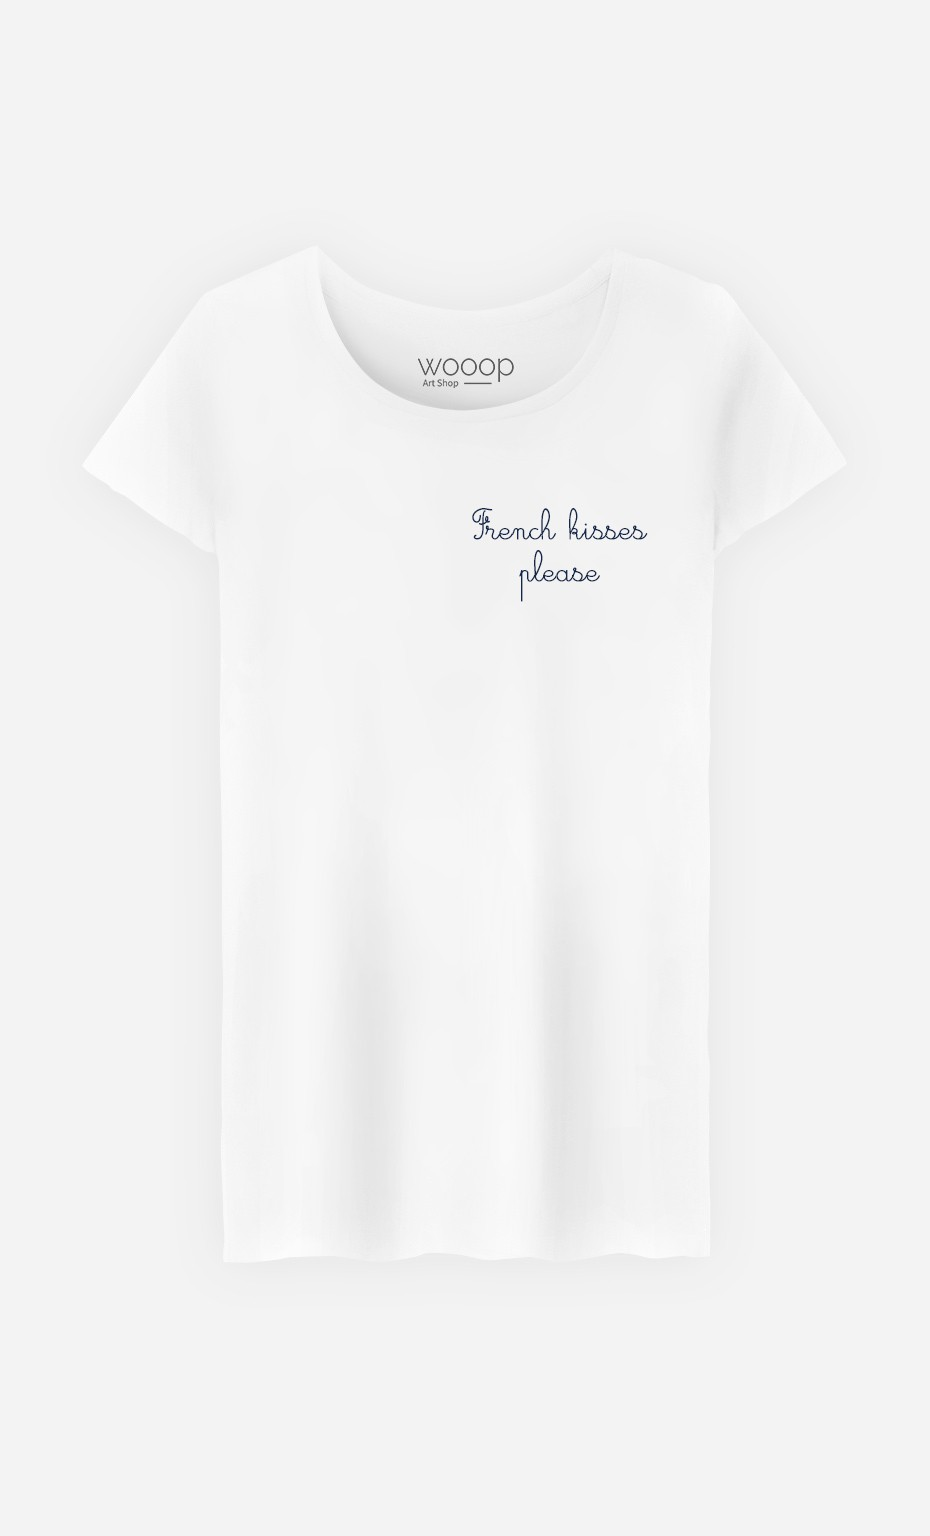 T-Shirt French Kisses Please - bestickt